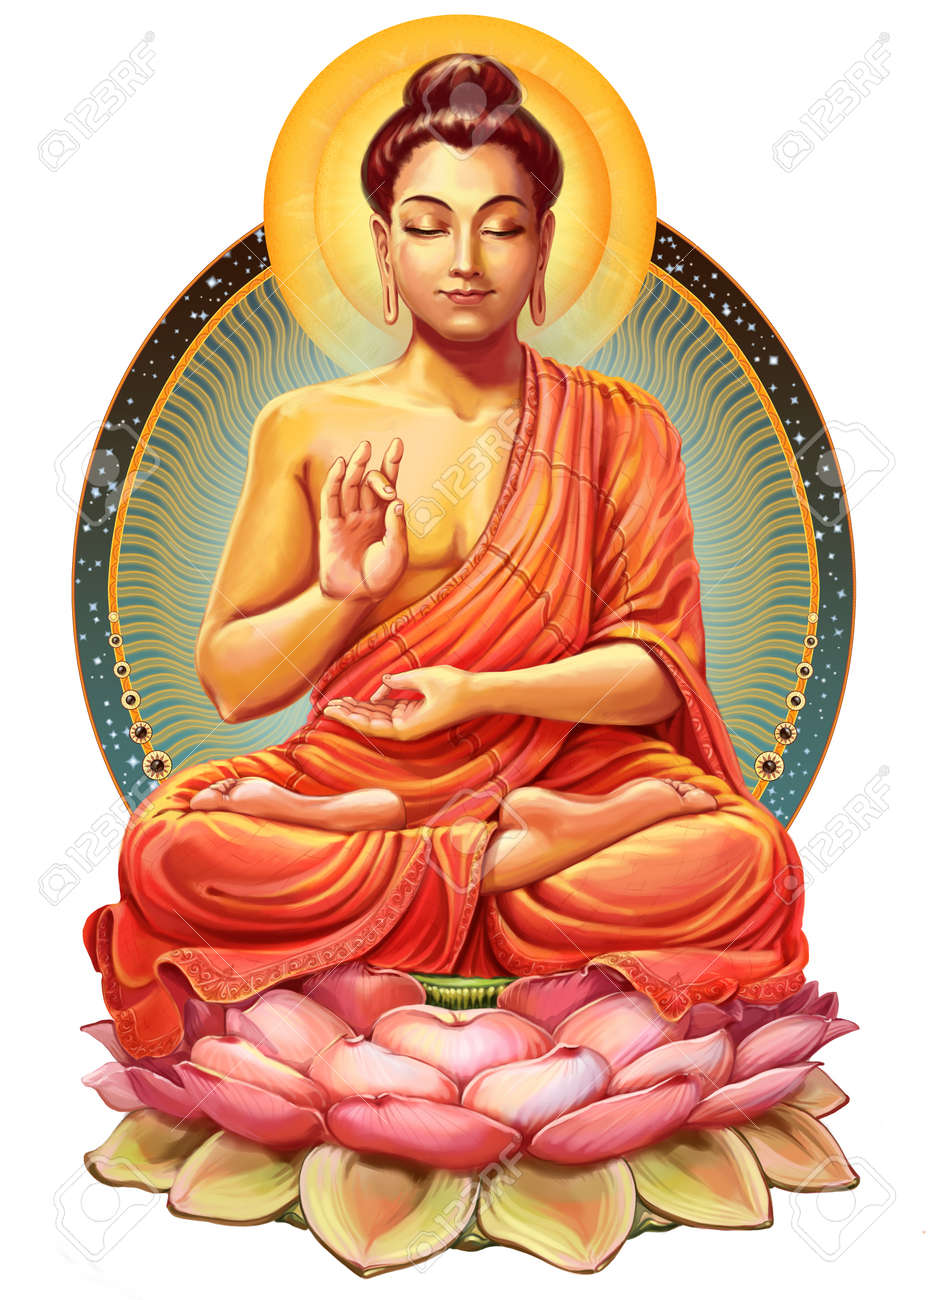 hight resolution of illustration with buddha in meditation raster illustration stock photo